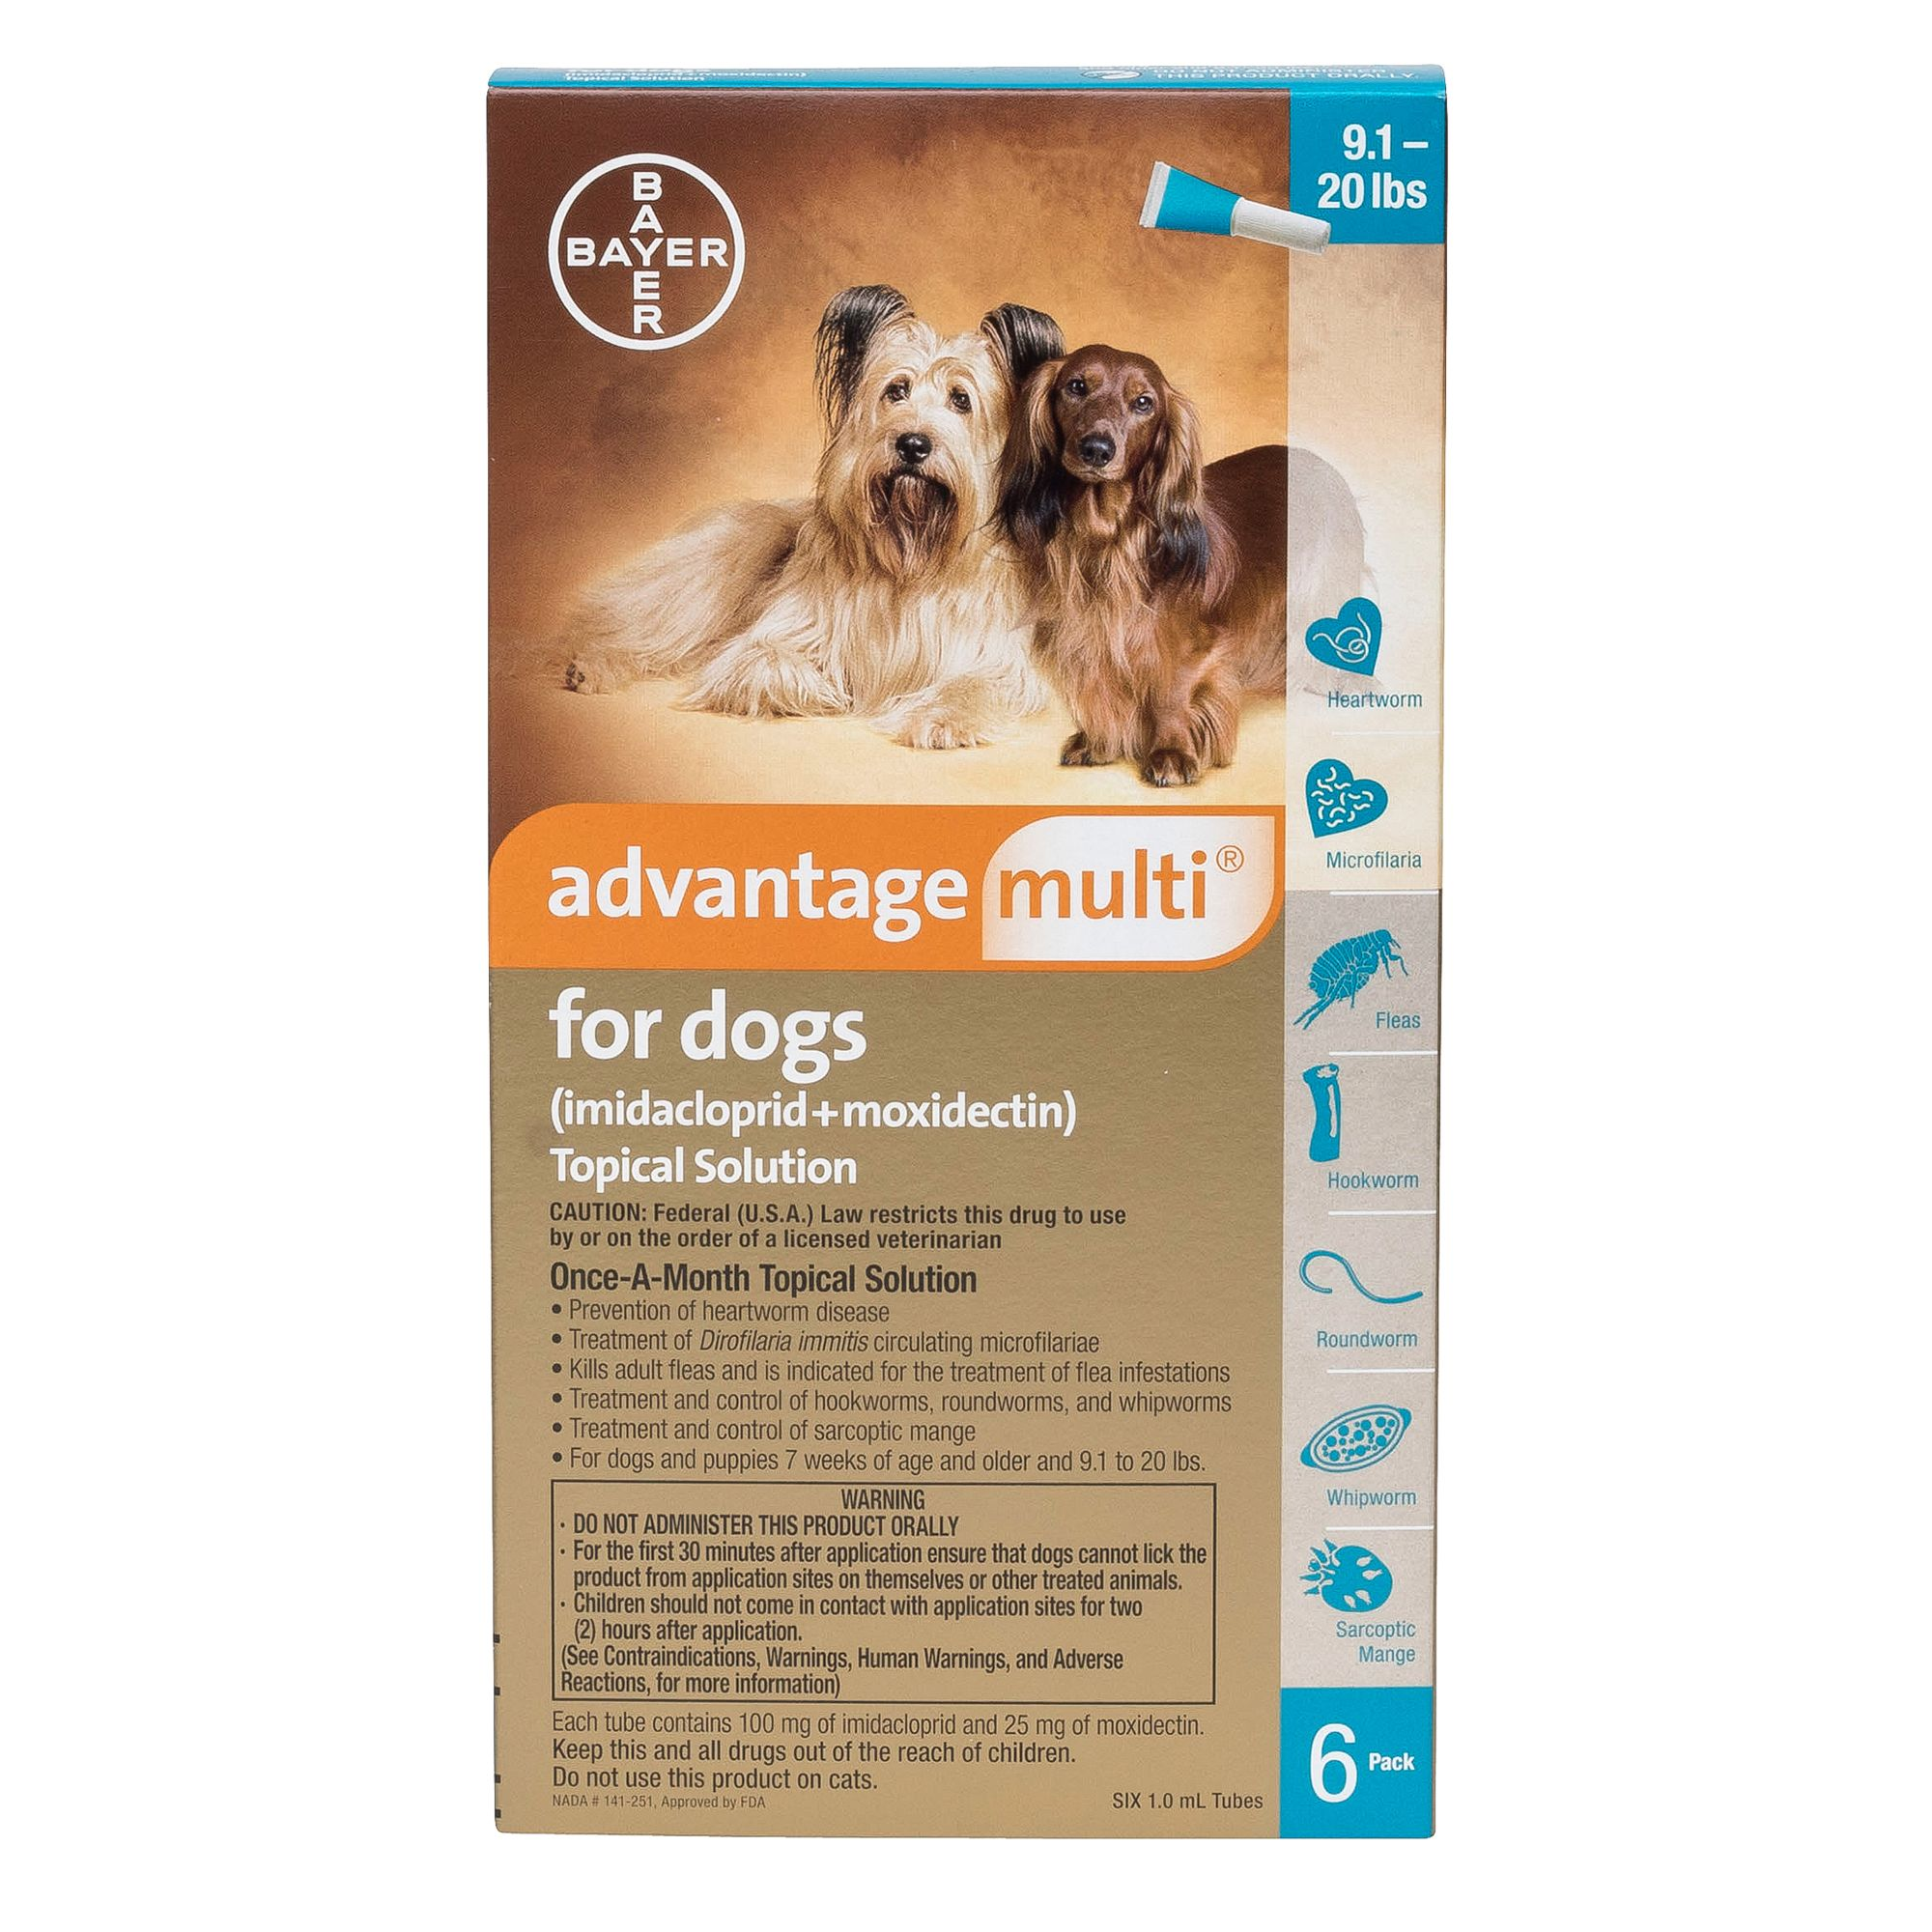 Advantage Multi Topical Solution For Dogs 6 Pack Size 9.1 20 Lbs